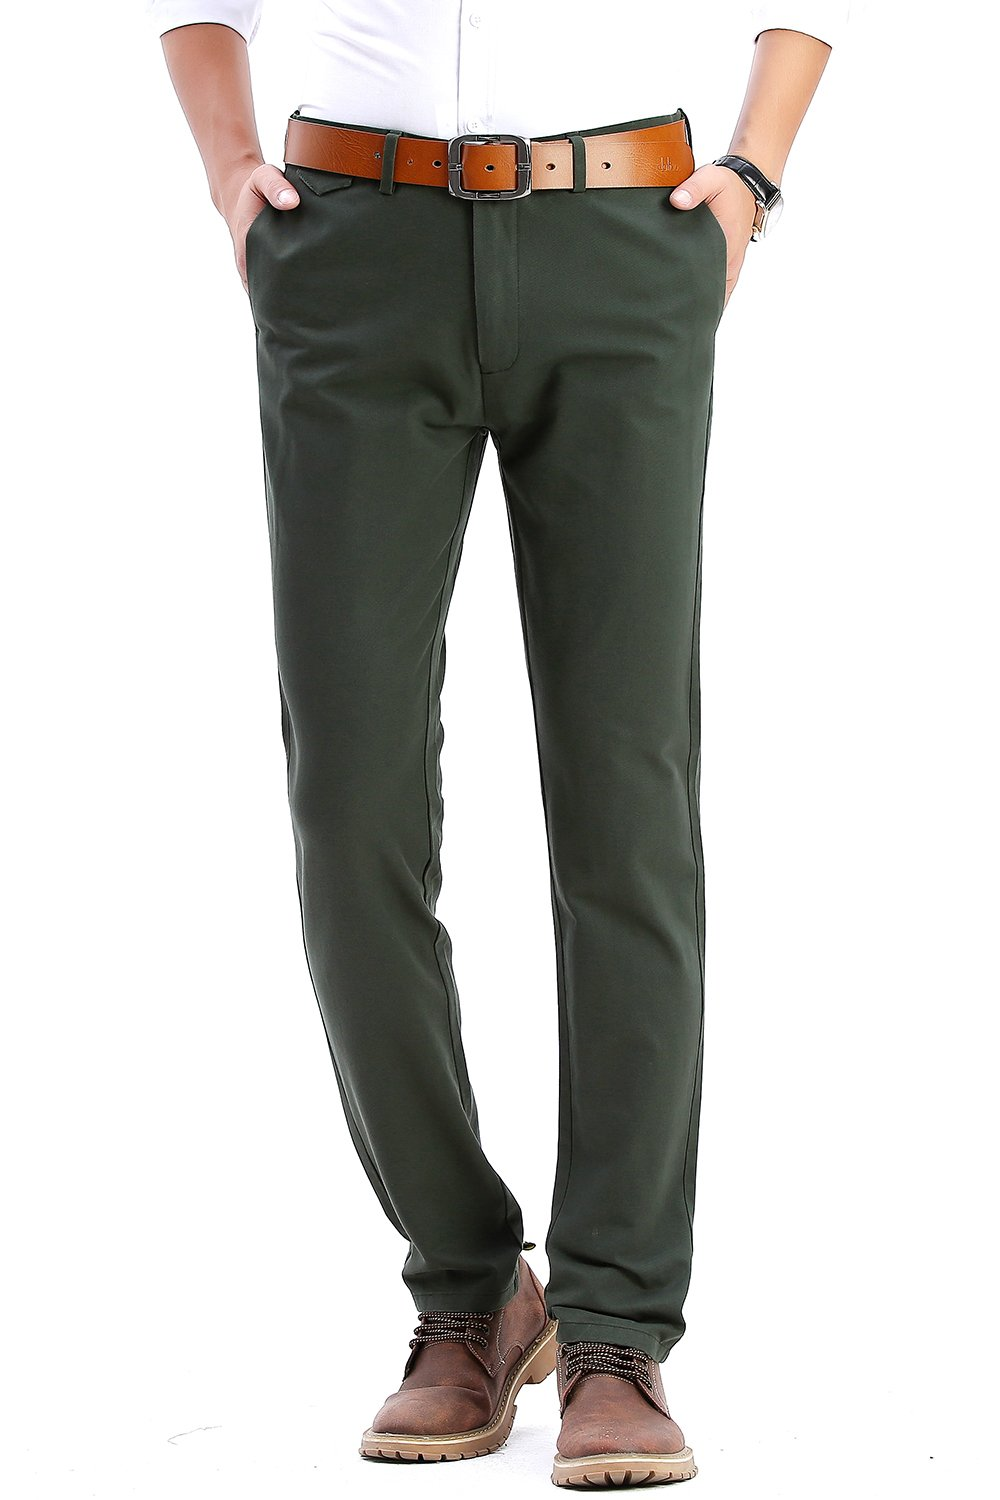 INFLATION Men's Stretchy Slim Fit Casual Pants,100% Cotton Flat Front Trousers Dress Pants for Men,Green Pants Size 36